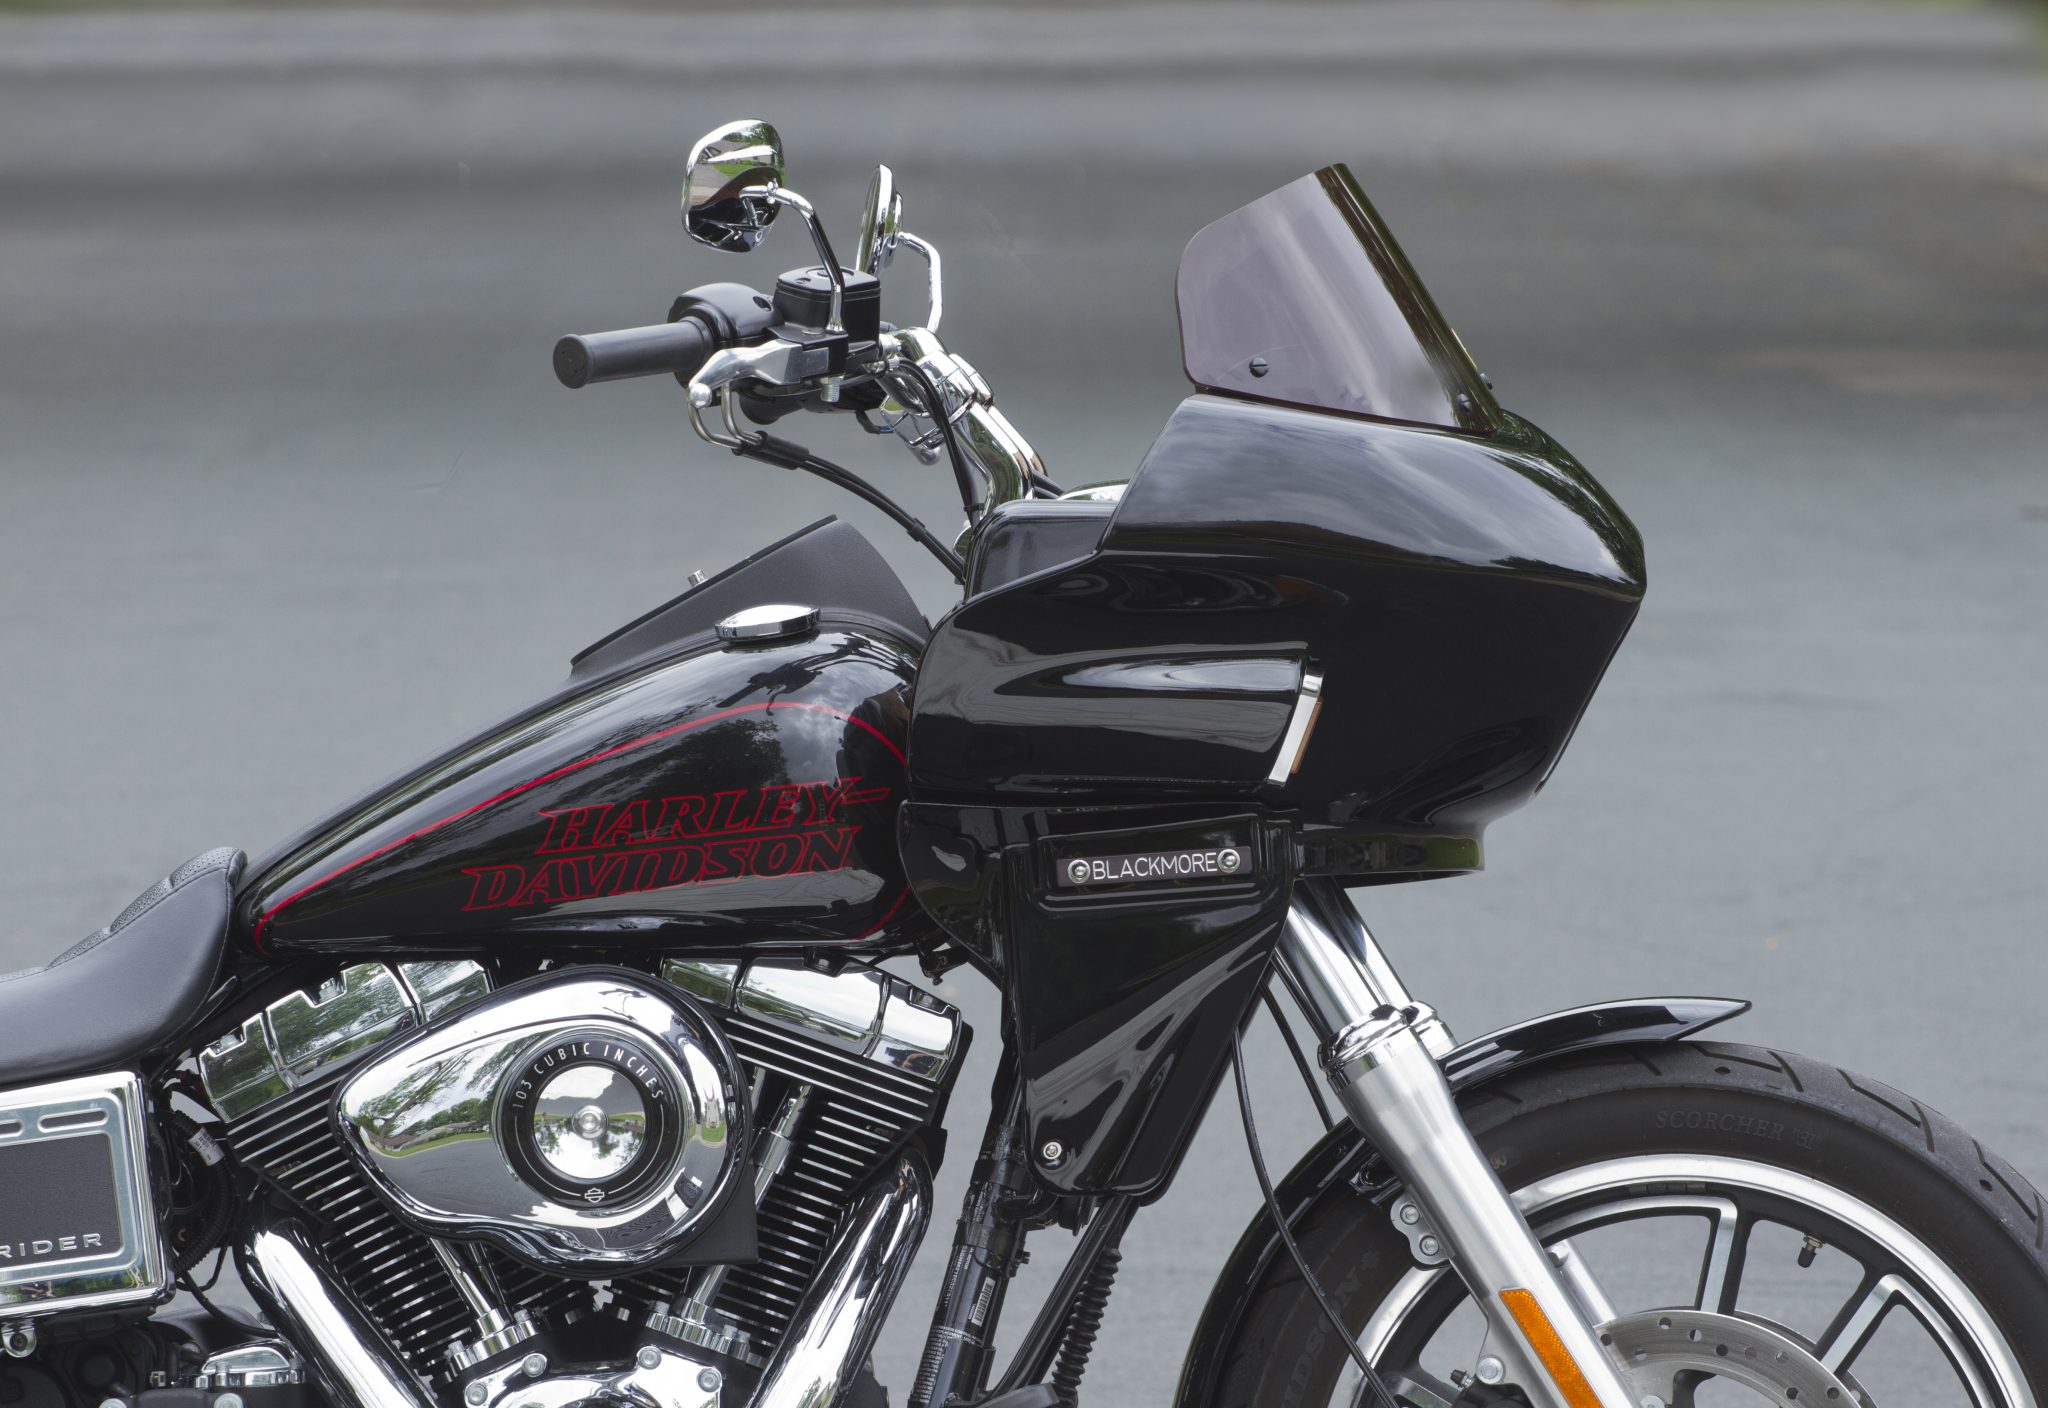 Harley Dyna with frame-mounted fairing